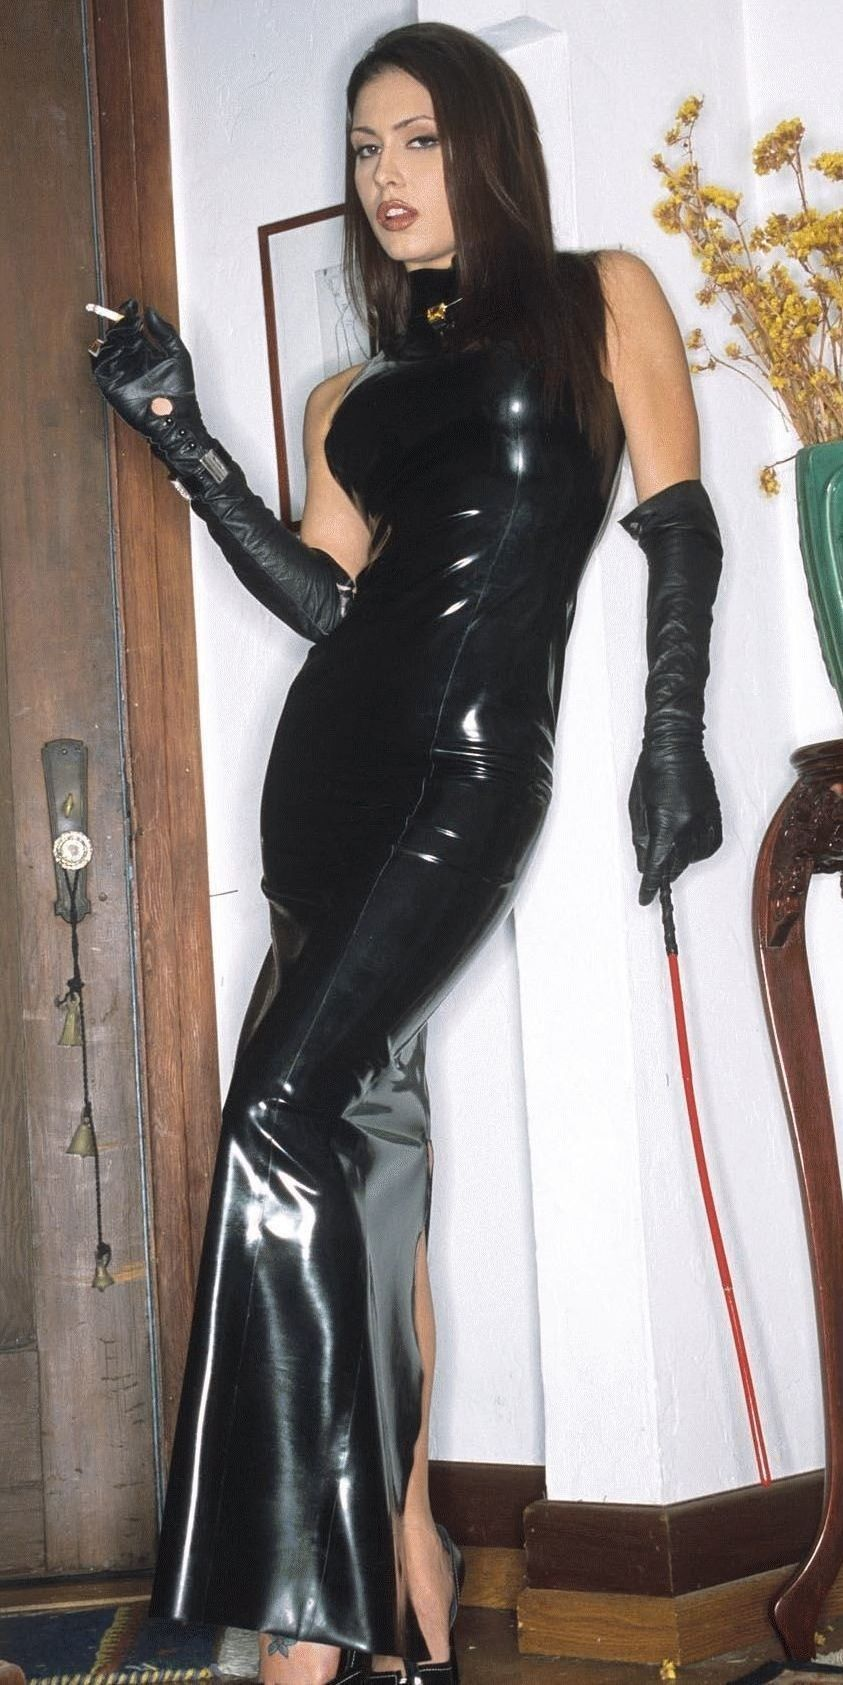 elbow-fetish-gloves-leather-length-smoking-exalted-porn